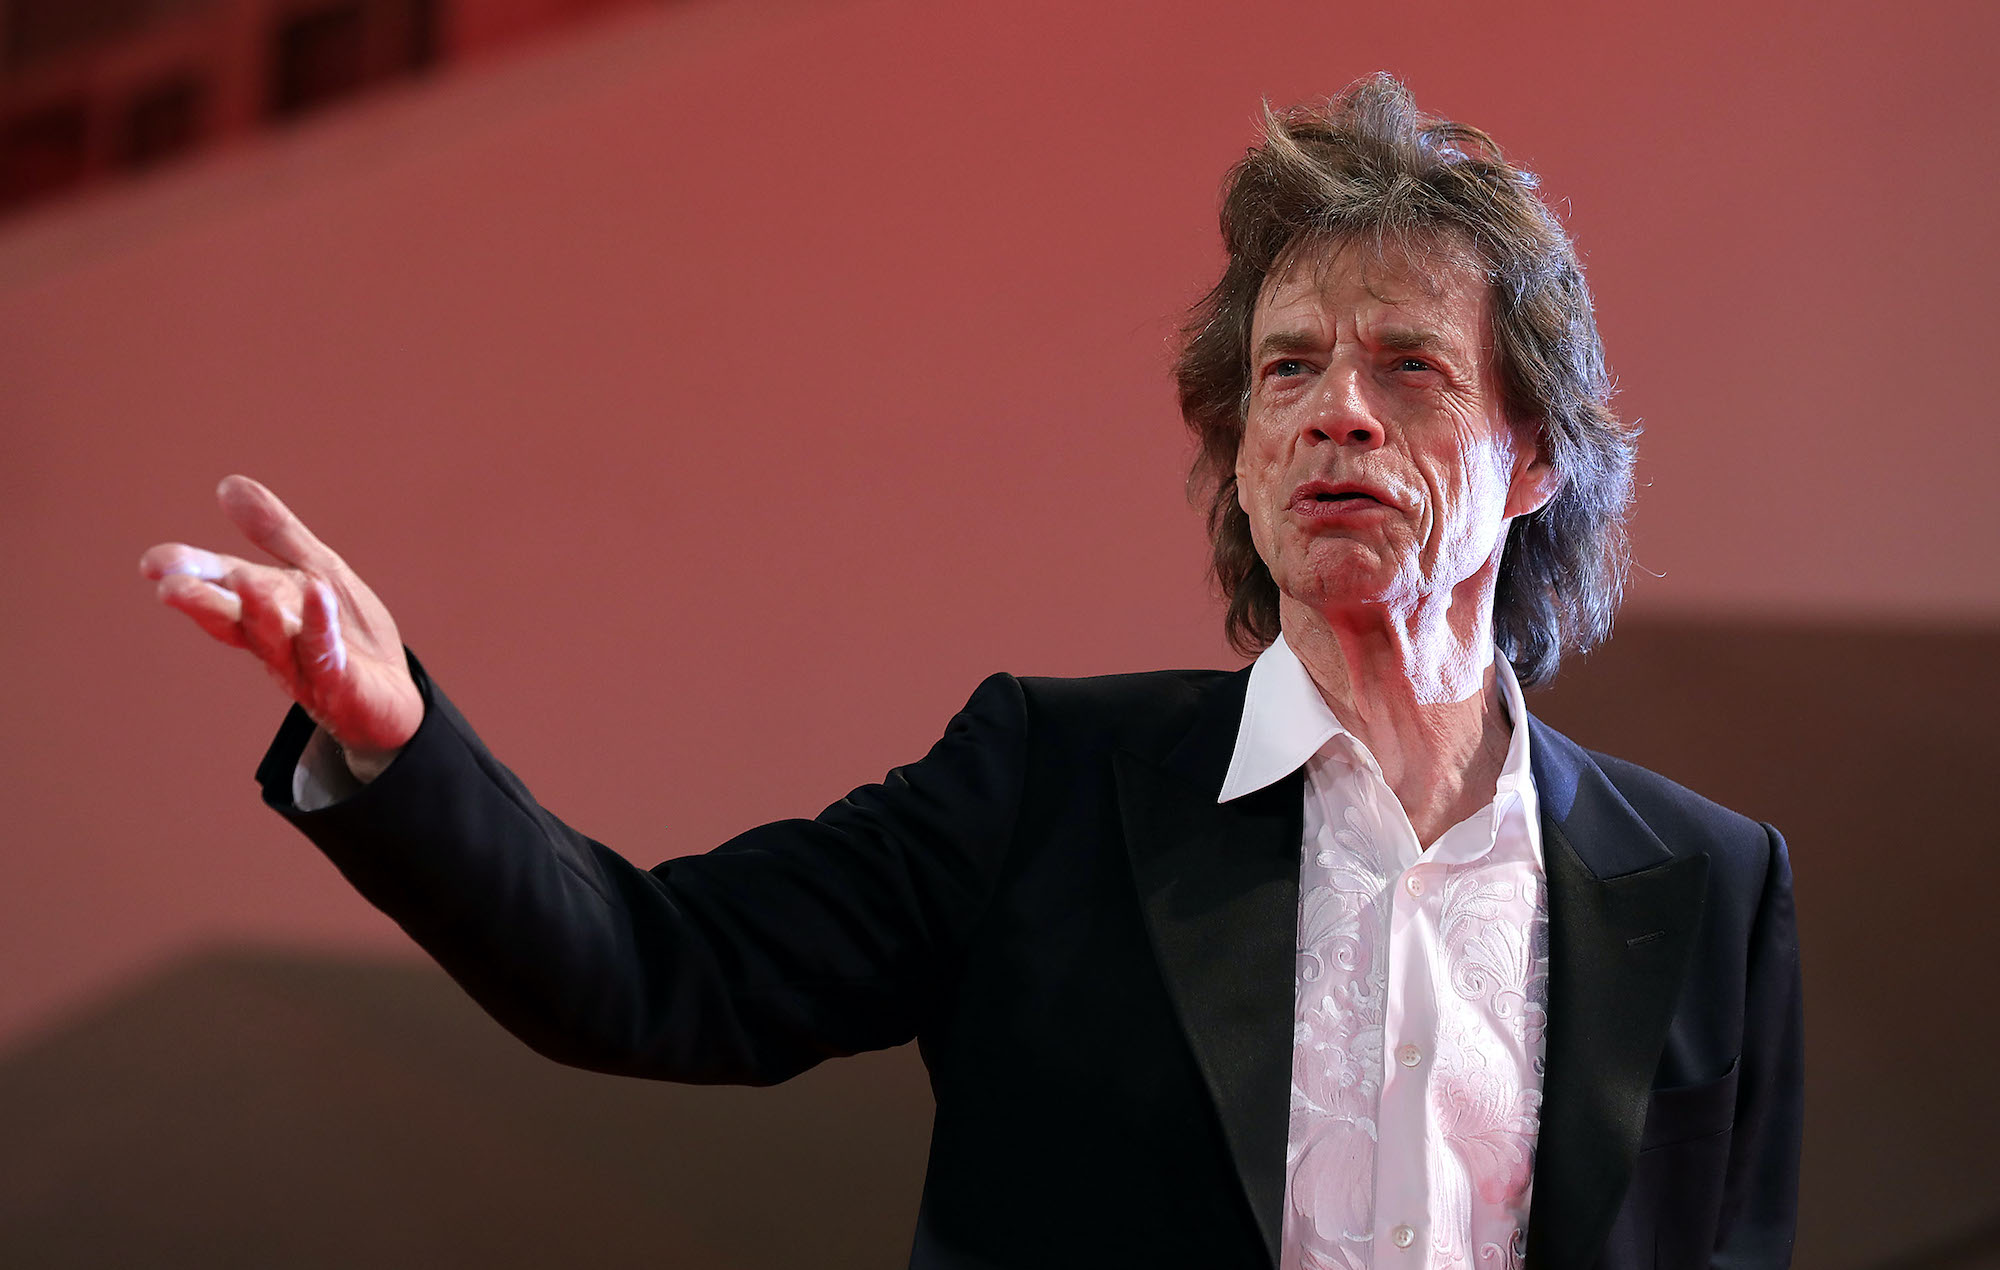 Watch Mick Jagger in a new trailer for 'The Burnt Orange Heresy'